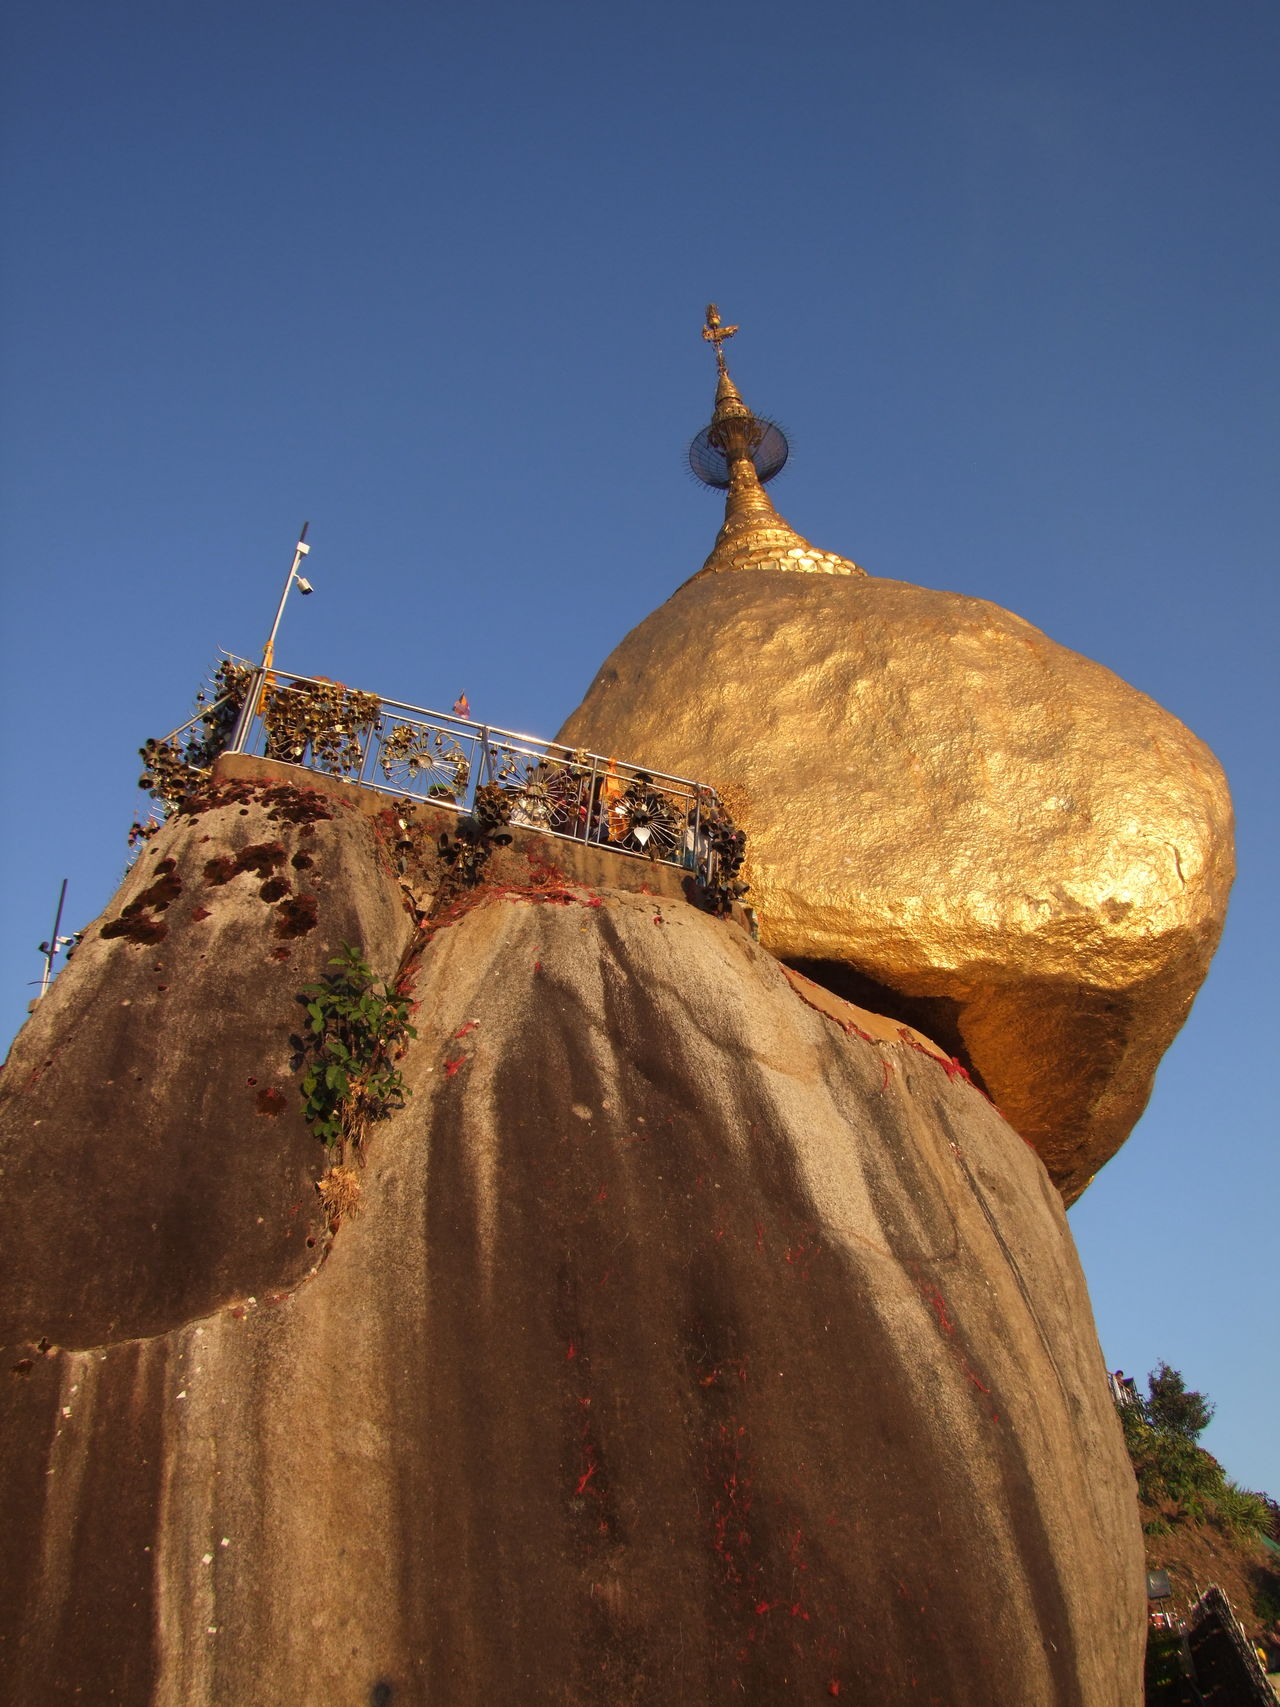 Golden Rock at Mount Kyaiktiyo Pagoda Blue Sky Buddhism Buddhism Culture Composition Gold Coloured Golden Rock Golden Rock Pagoda Kinpun Low Angle View Mount Kyaiktiyo Mount Kyaiktiyo Pagoda Myanmar No People Outdoor Photography Place Of Pilgrimage Place Of Prayer Place Of Worship Religion Rocka Shining Sunlight And Shade Tourism Tourist Attraction  Tourist Destination Travel Destination